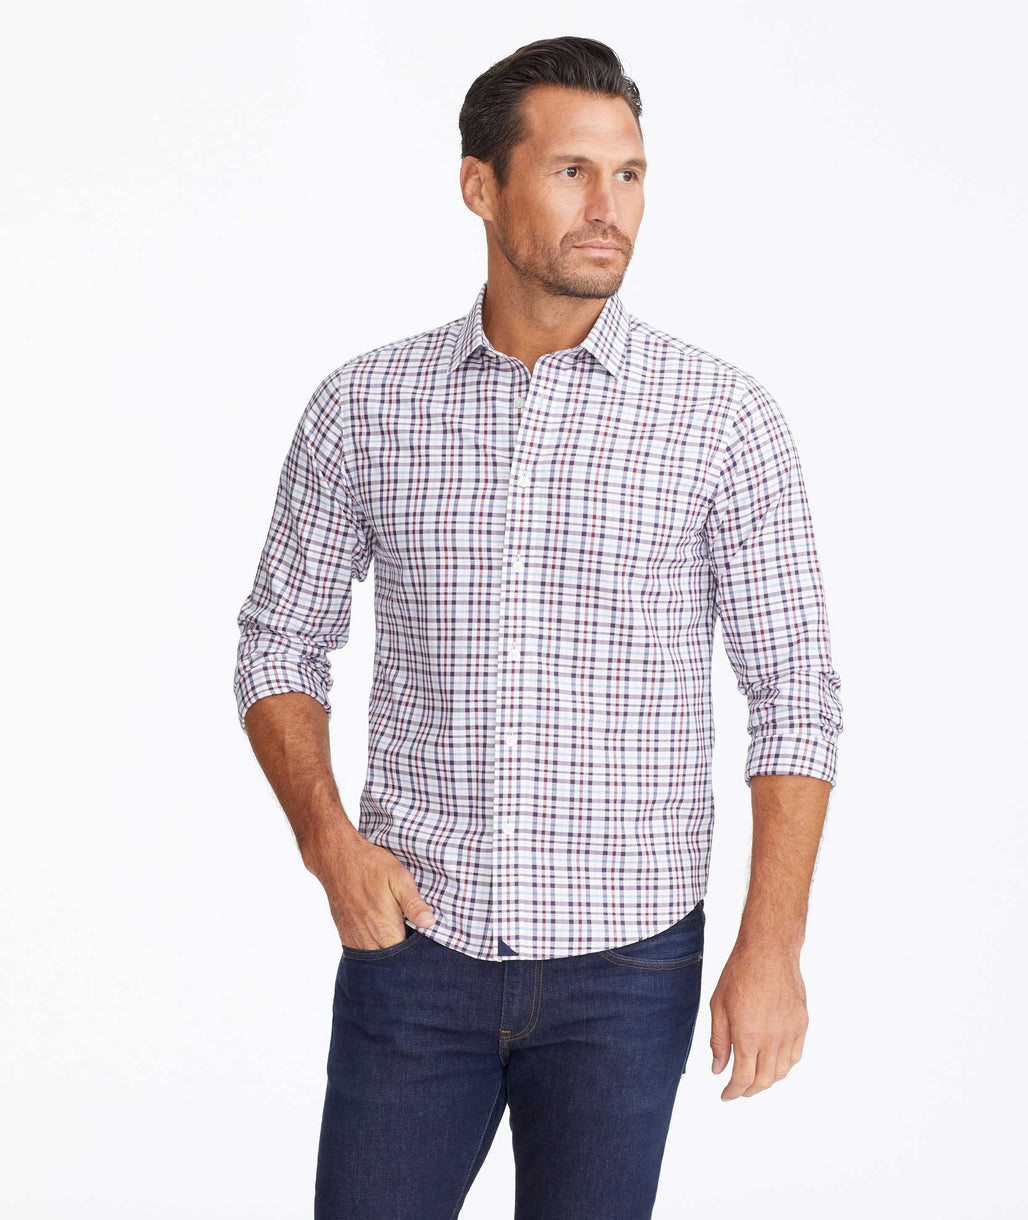 Model wearing a Navy Wrinkle-Free Salento Shirt